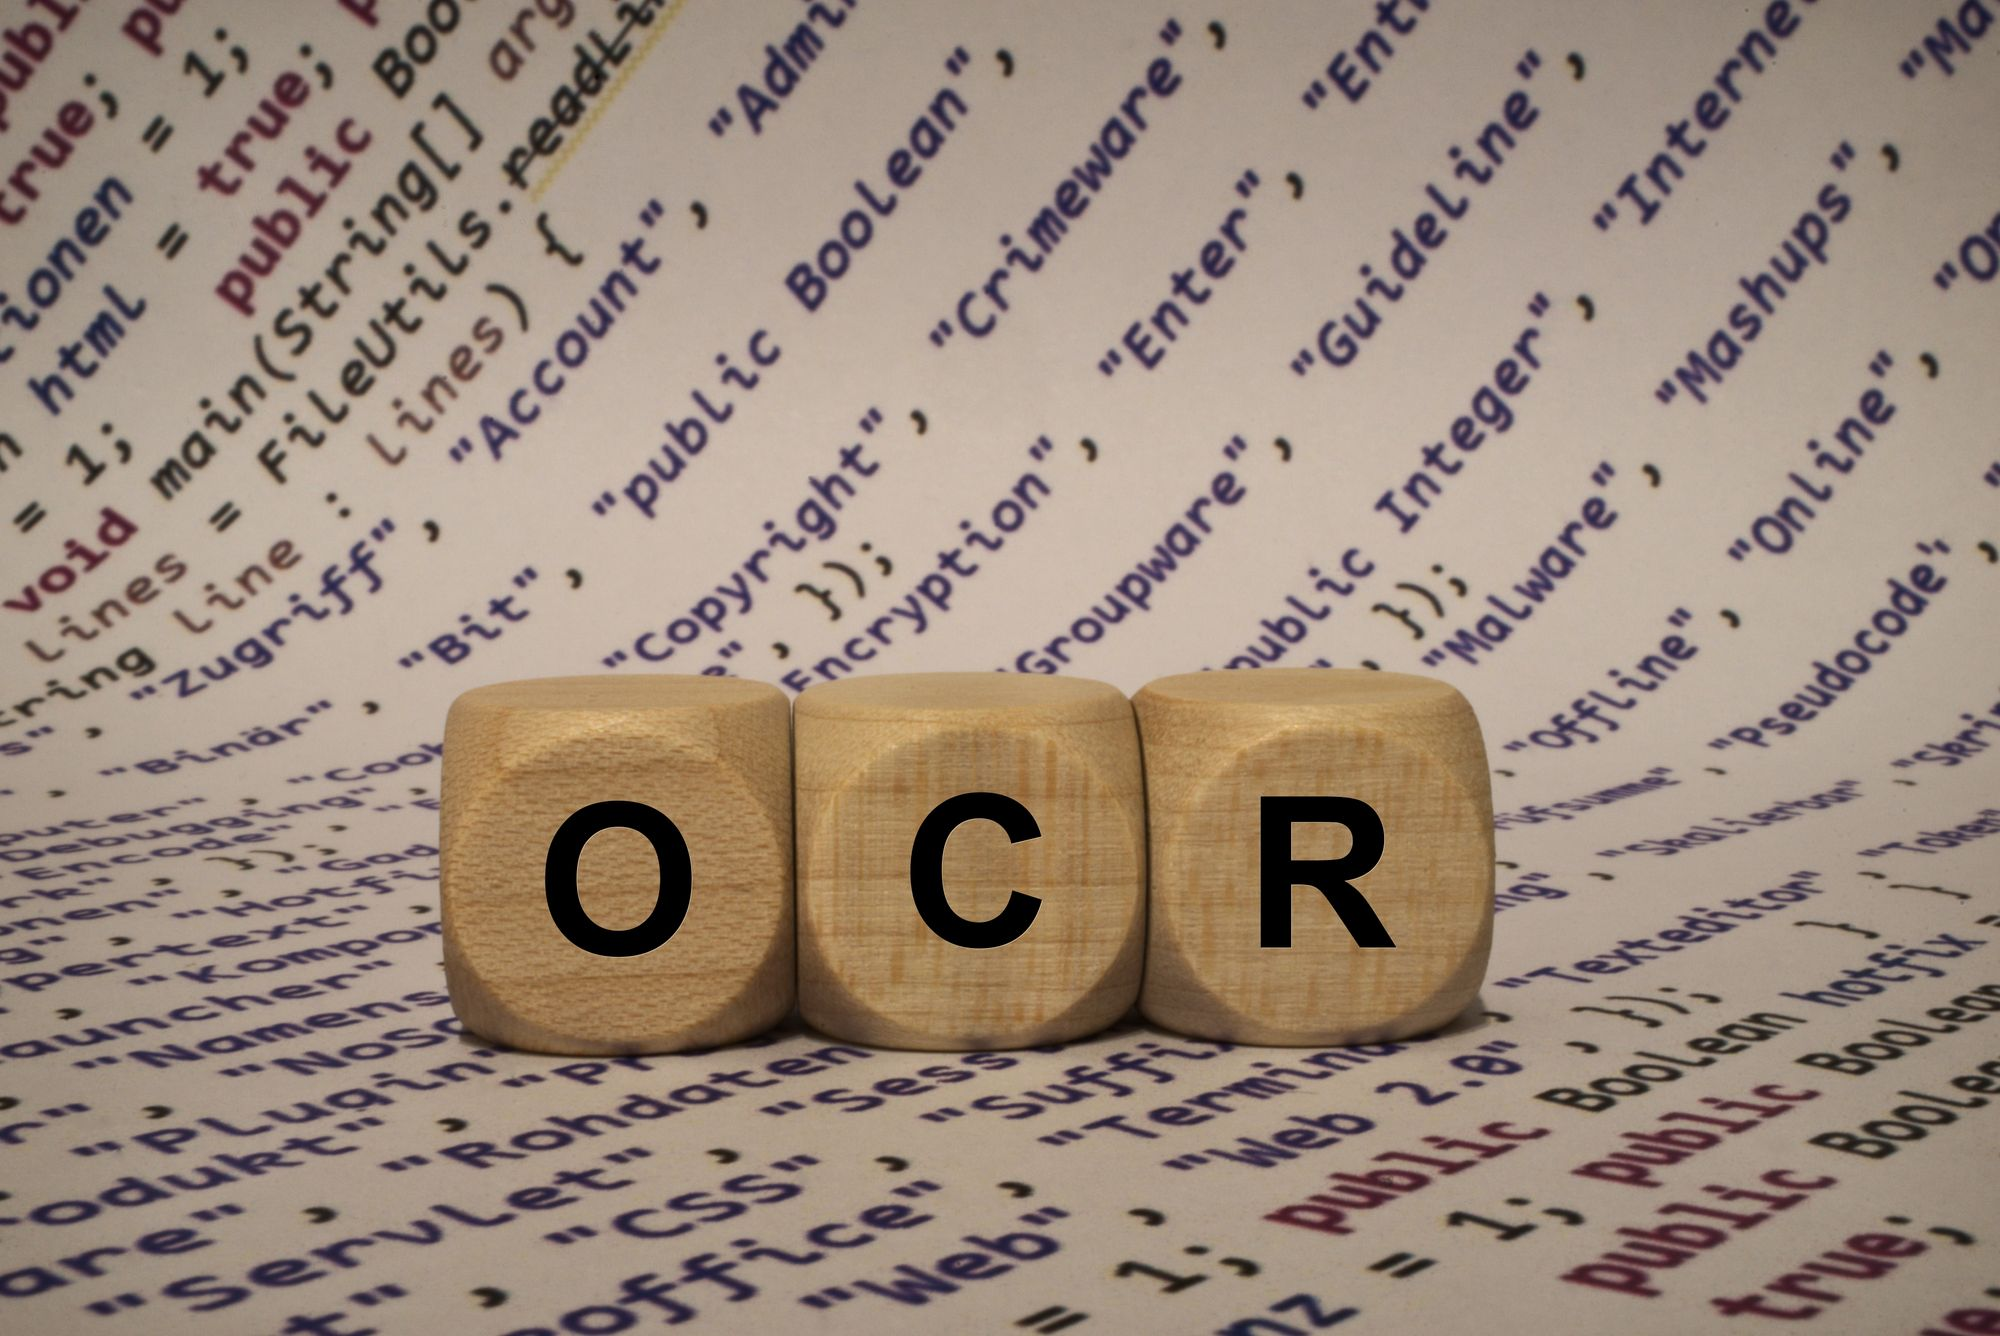 Manual Data Entry - Optical Character Recognition (OCR) for Automated Data Entry